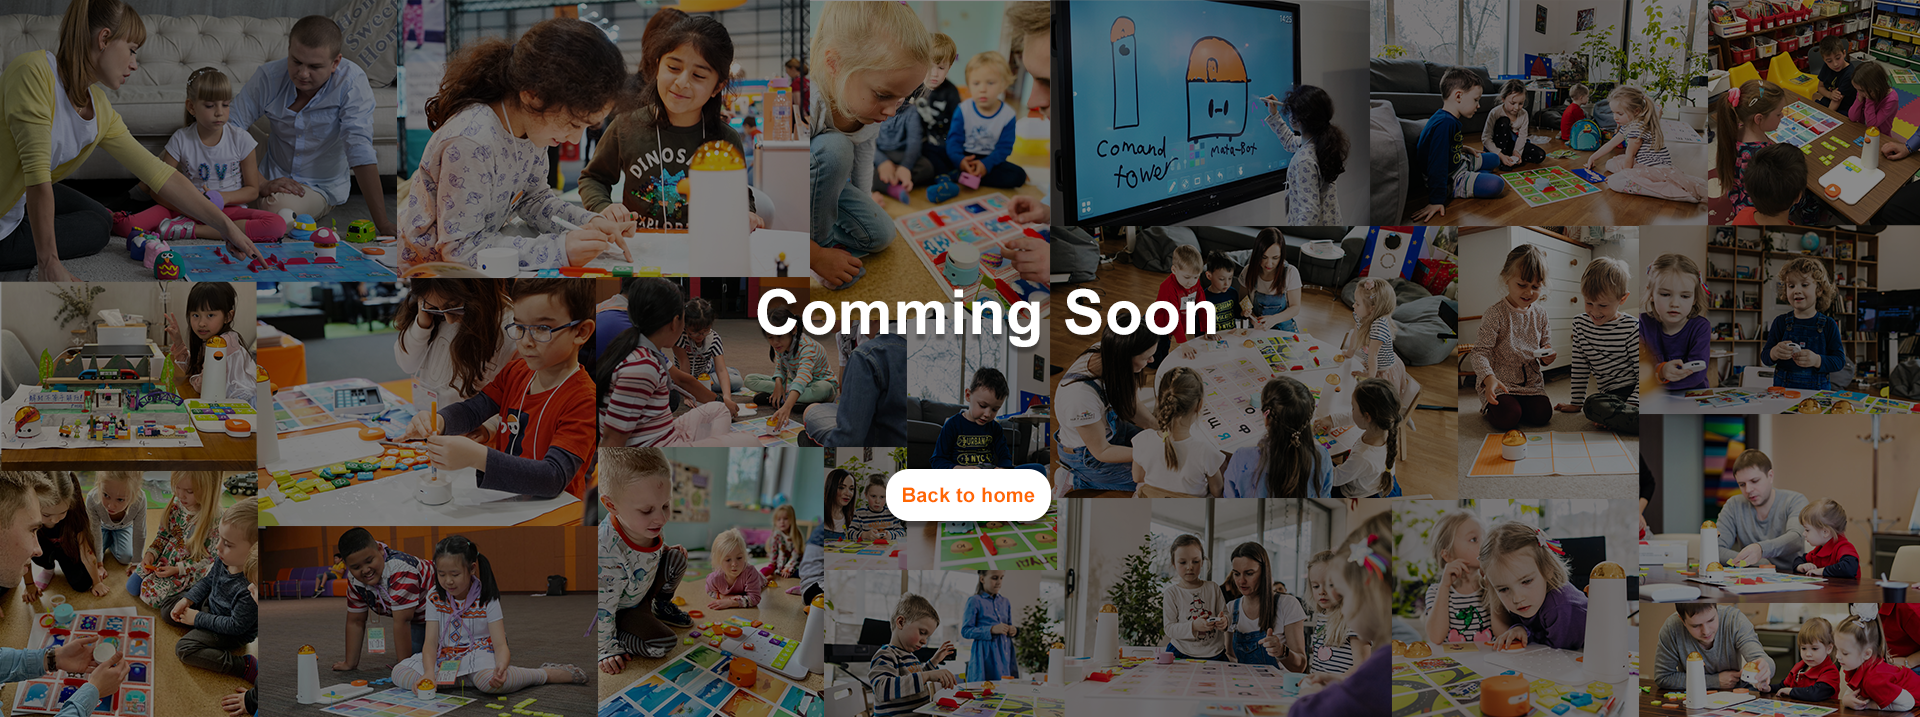 Comming Soon Page - Coding Kits for Kids - Matatalab